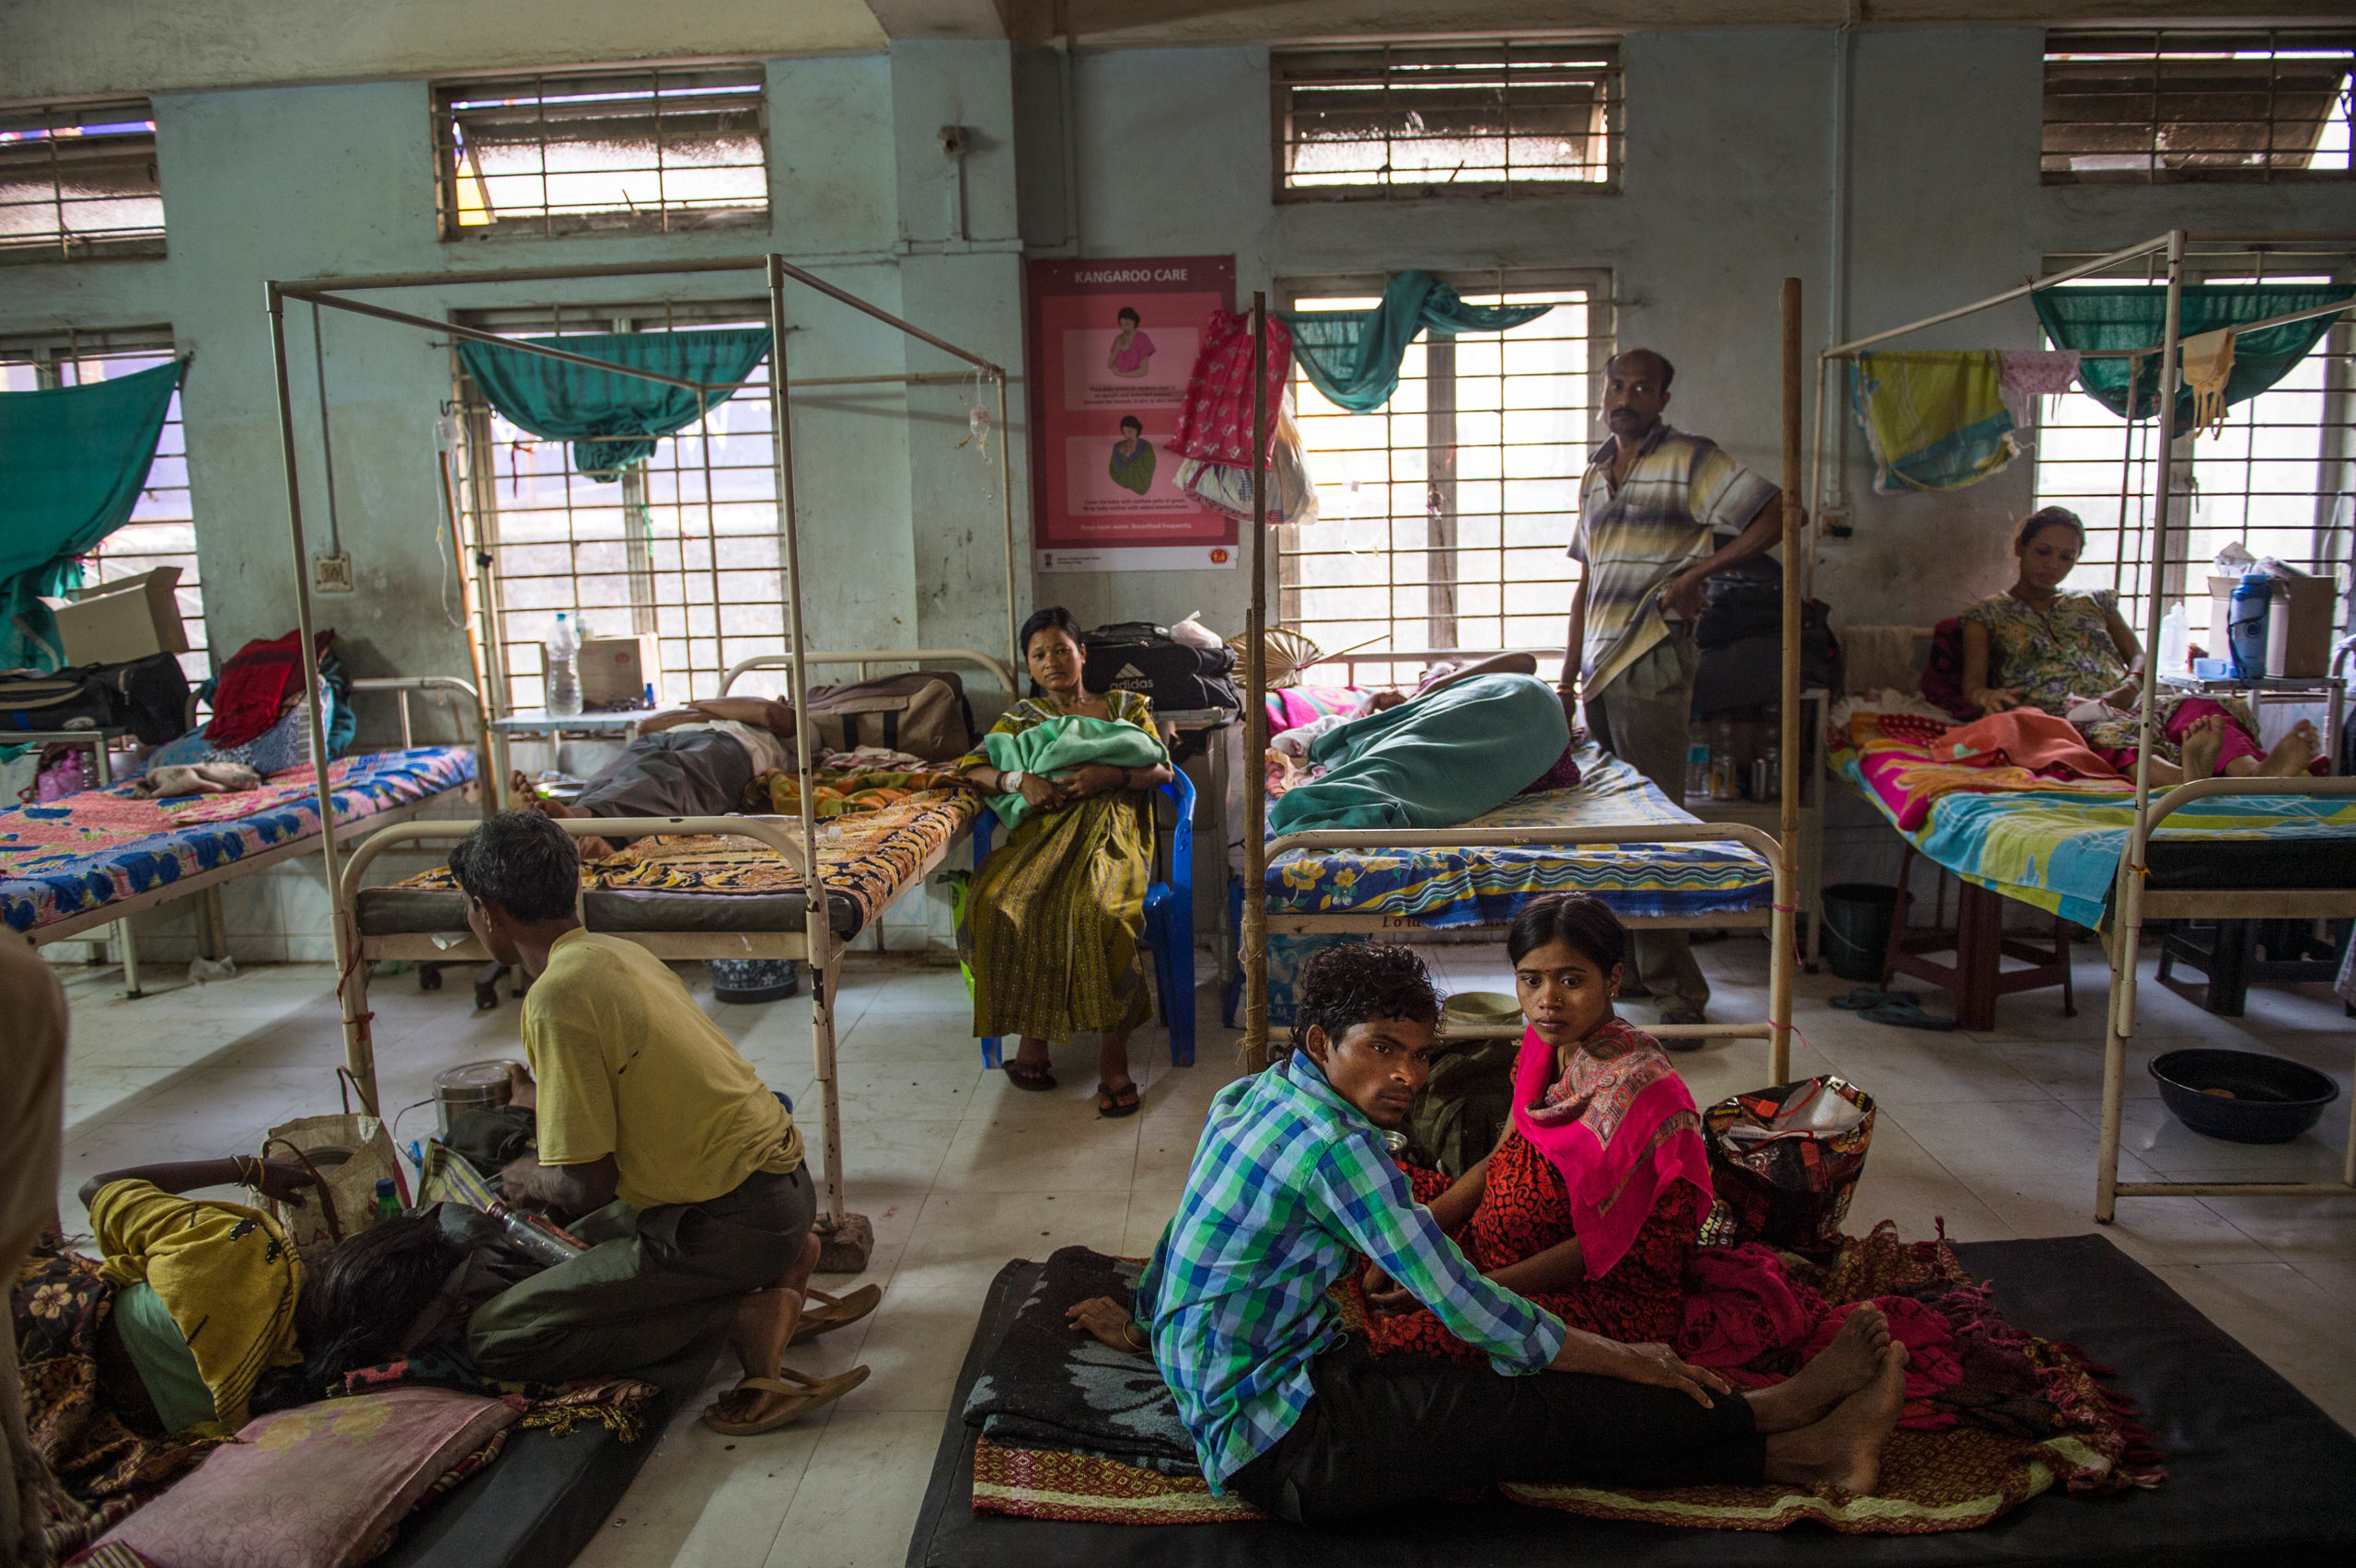 Indian families rest in a room reserved for women recovering from cesarean sections, at the Tezpur Civil Hospital in Tezpur, Assam, India. April, 2015.  Assam has the highest rate of women dying in childbirth and from pregnancy-related causes in all of India. The conditions in many of Assam's state-run medical facilities are often overcrowded and unhygienic, with an insufficient number of doctors, and patients sprawled out in the floors and hallways due to a limited number of beds.